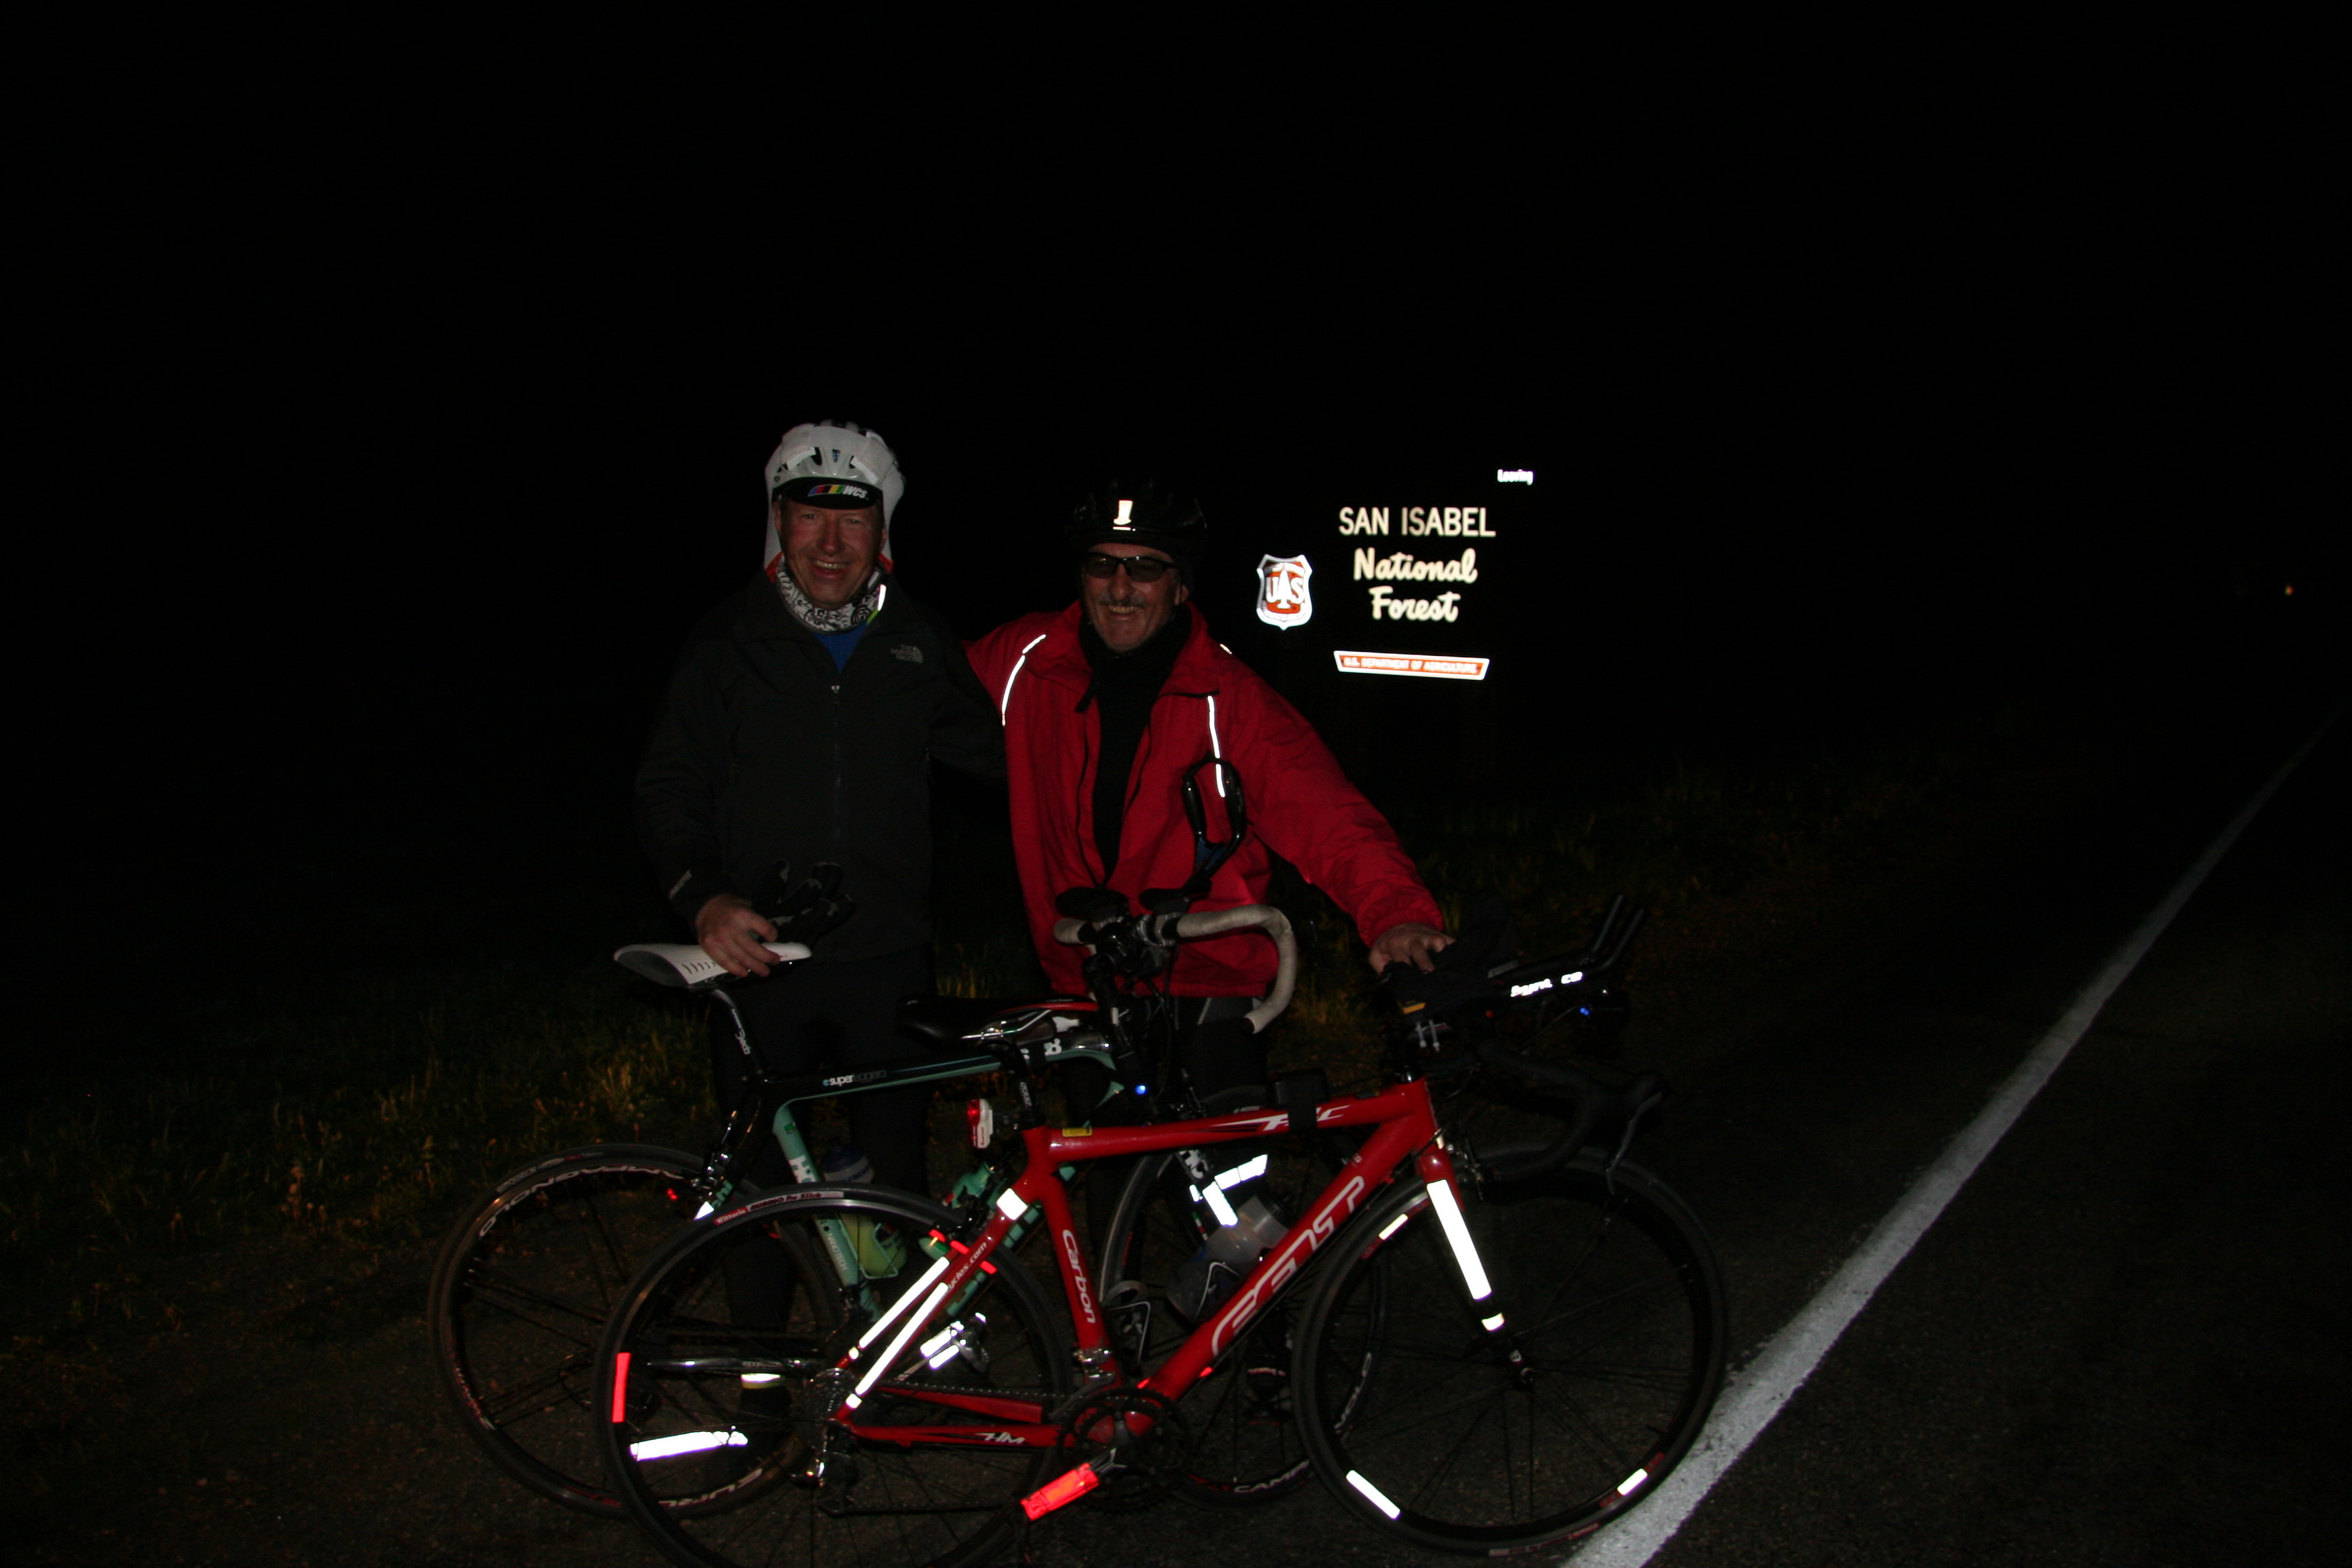 6-14-the-carpenters-fellow-racer-paul-on-the-last-lump-of-the-rockies